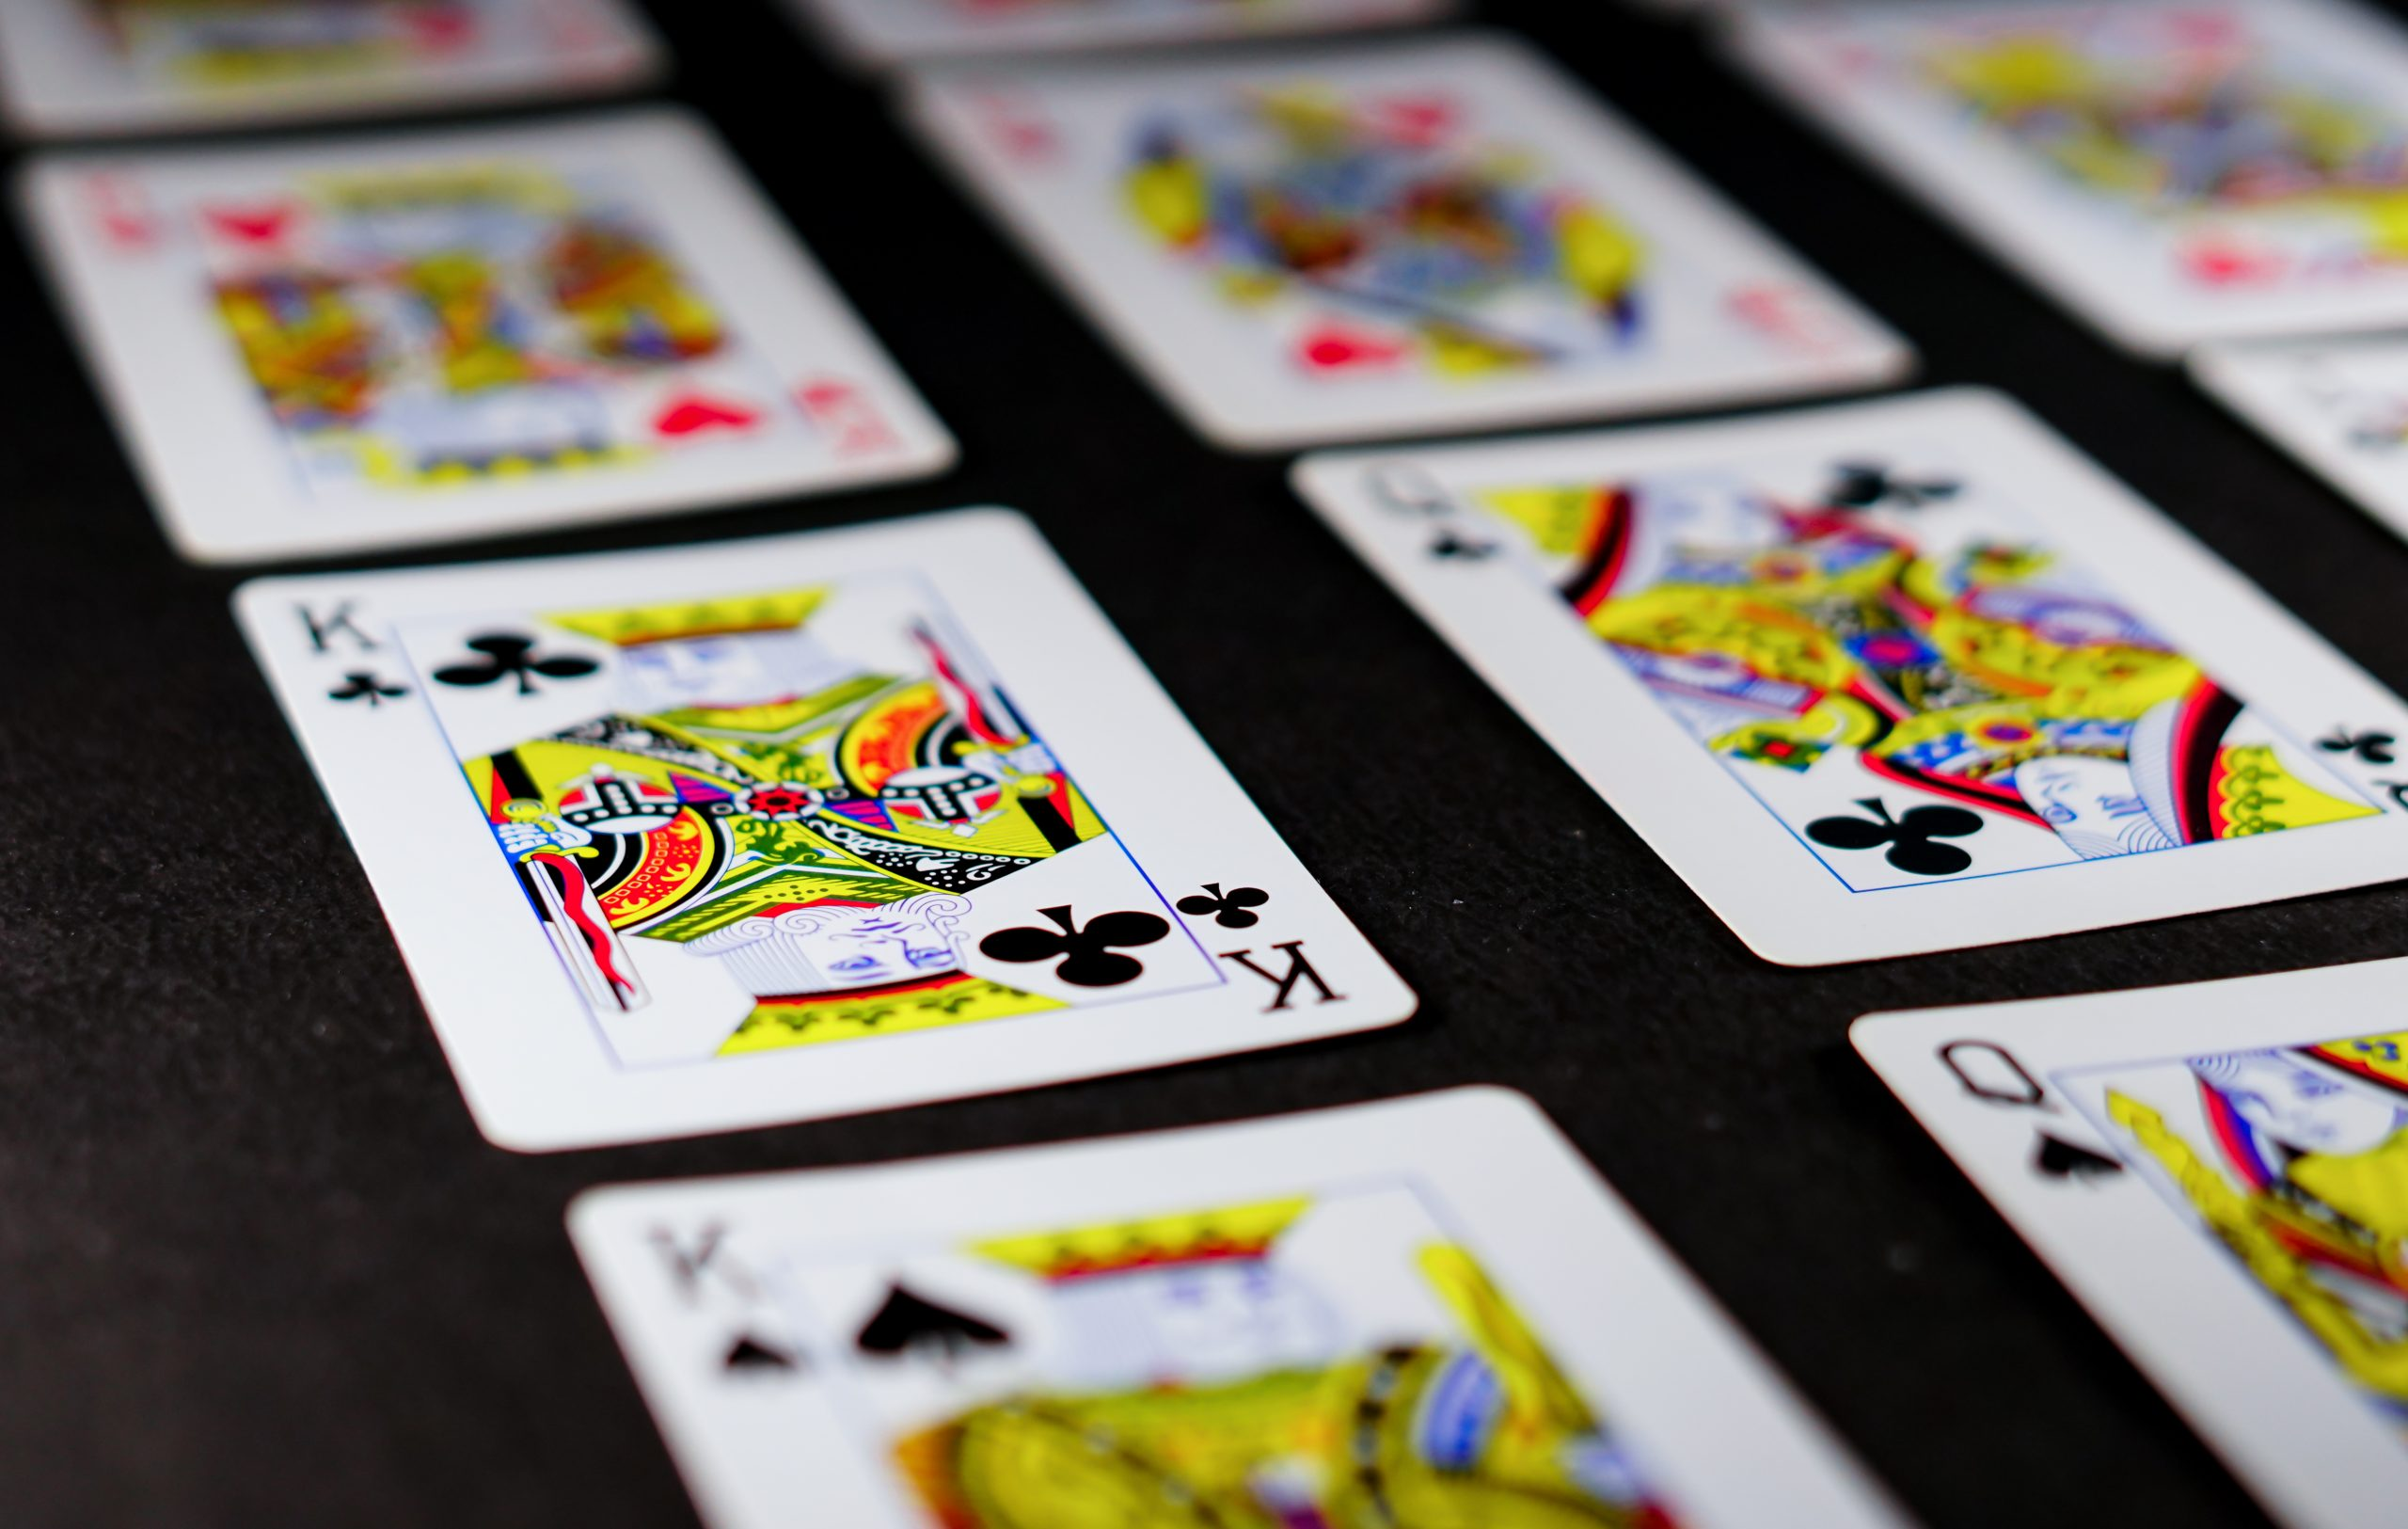 King in playng cards